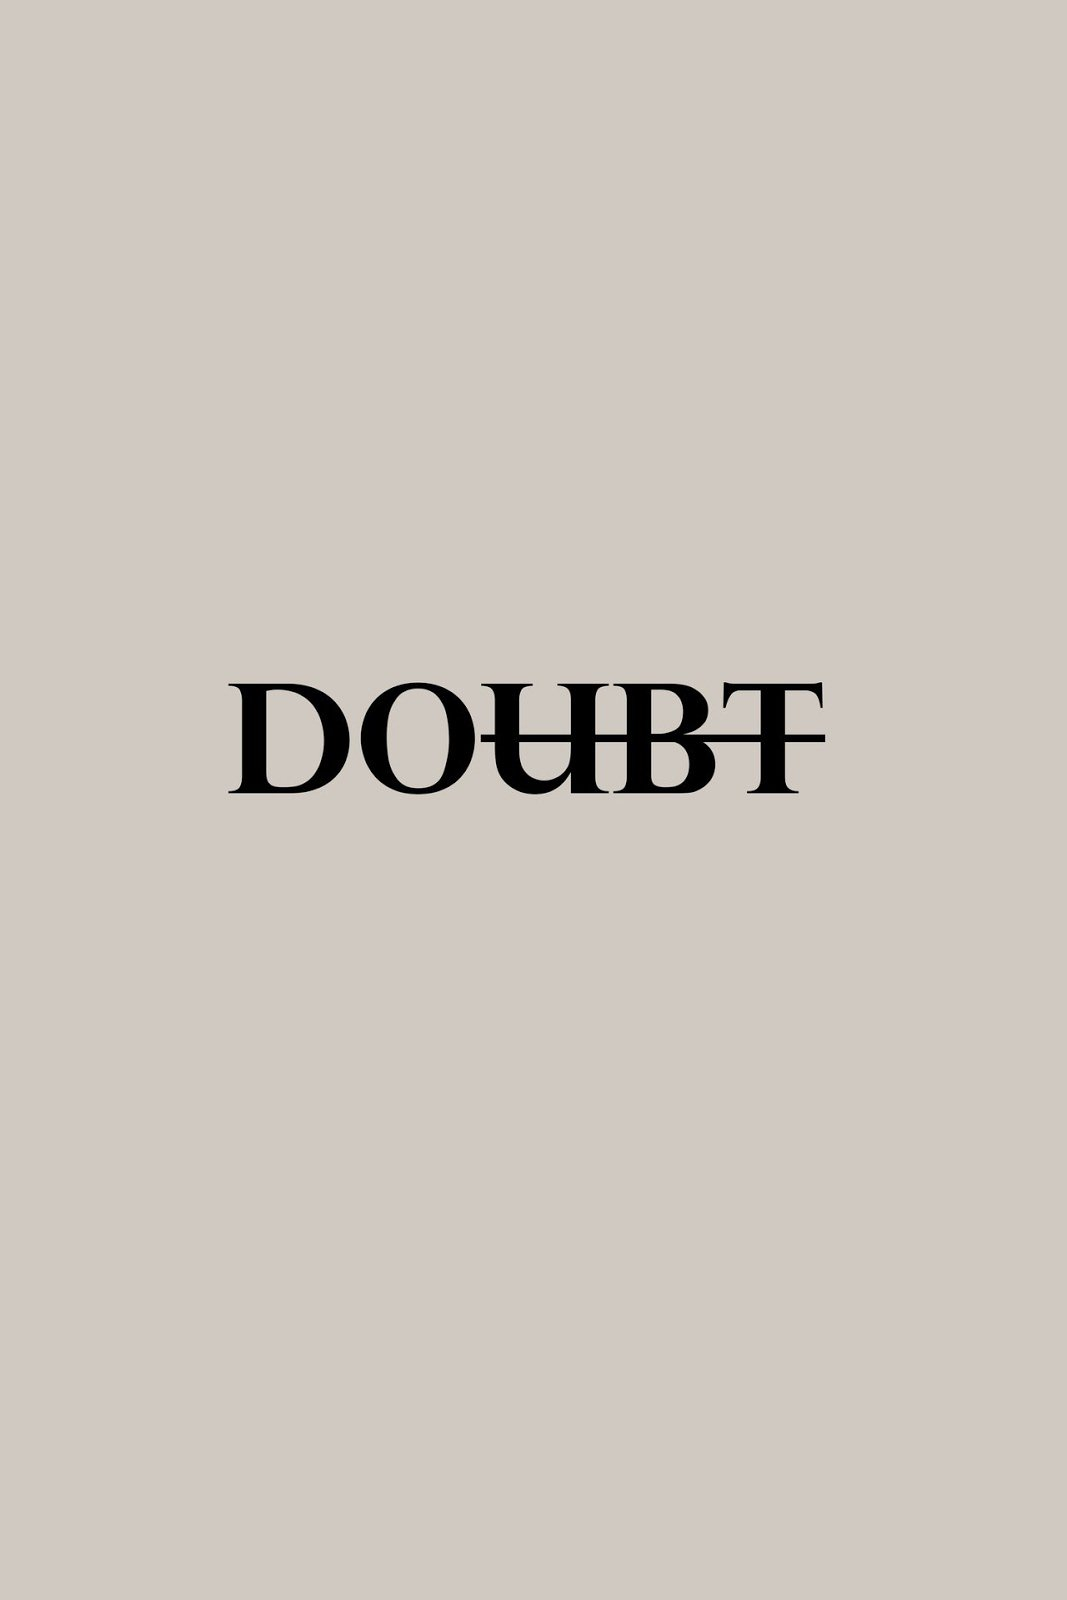 Doubt changes to do